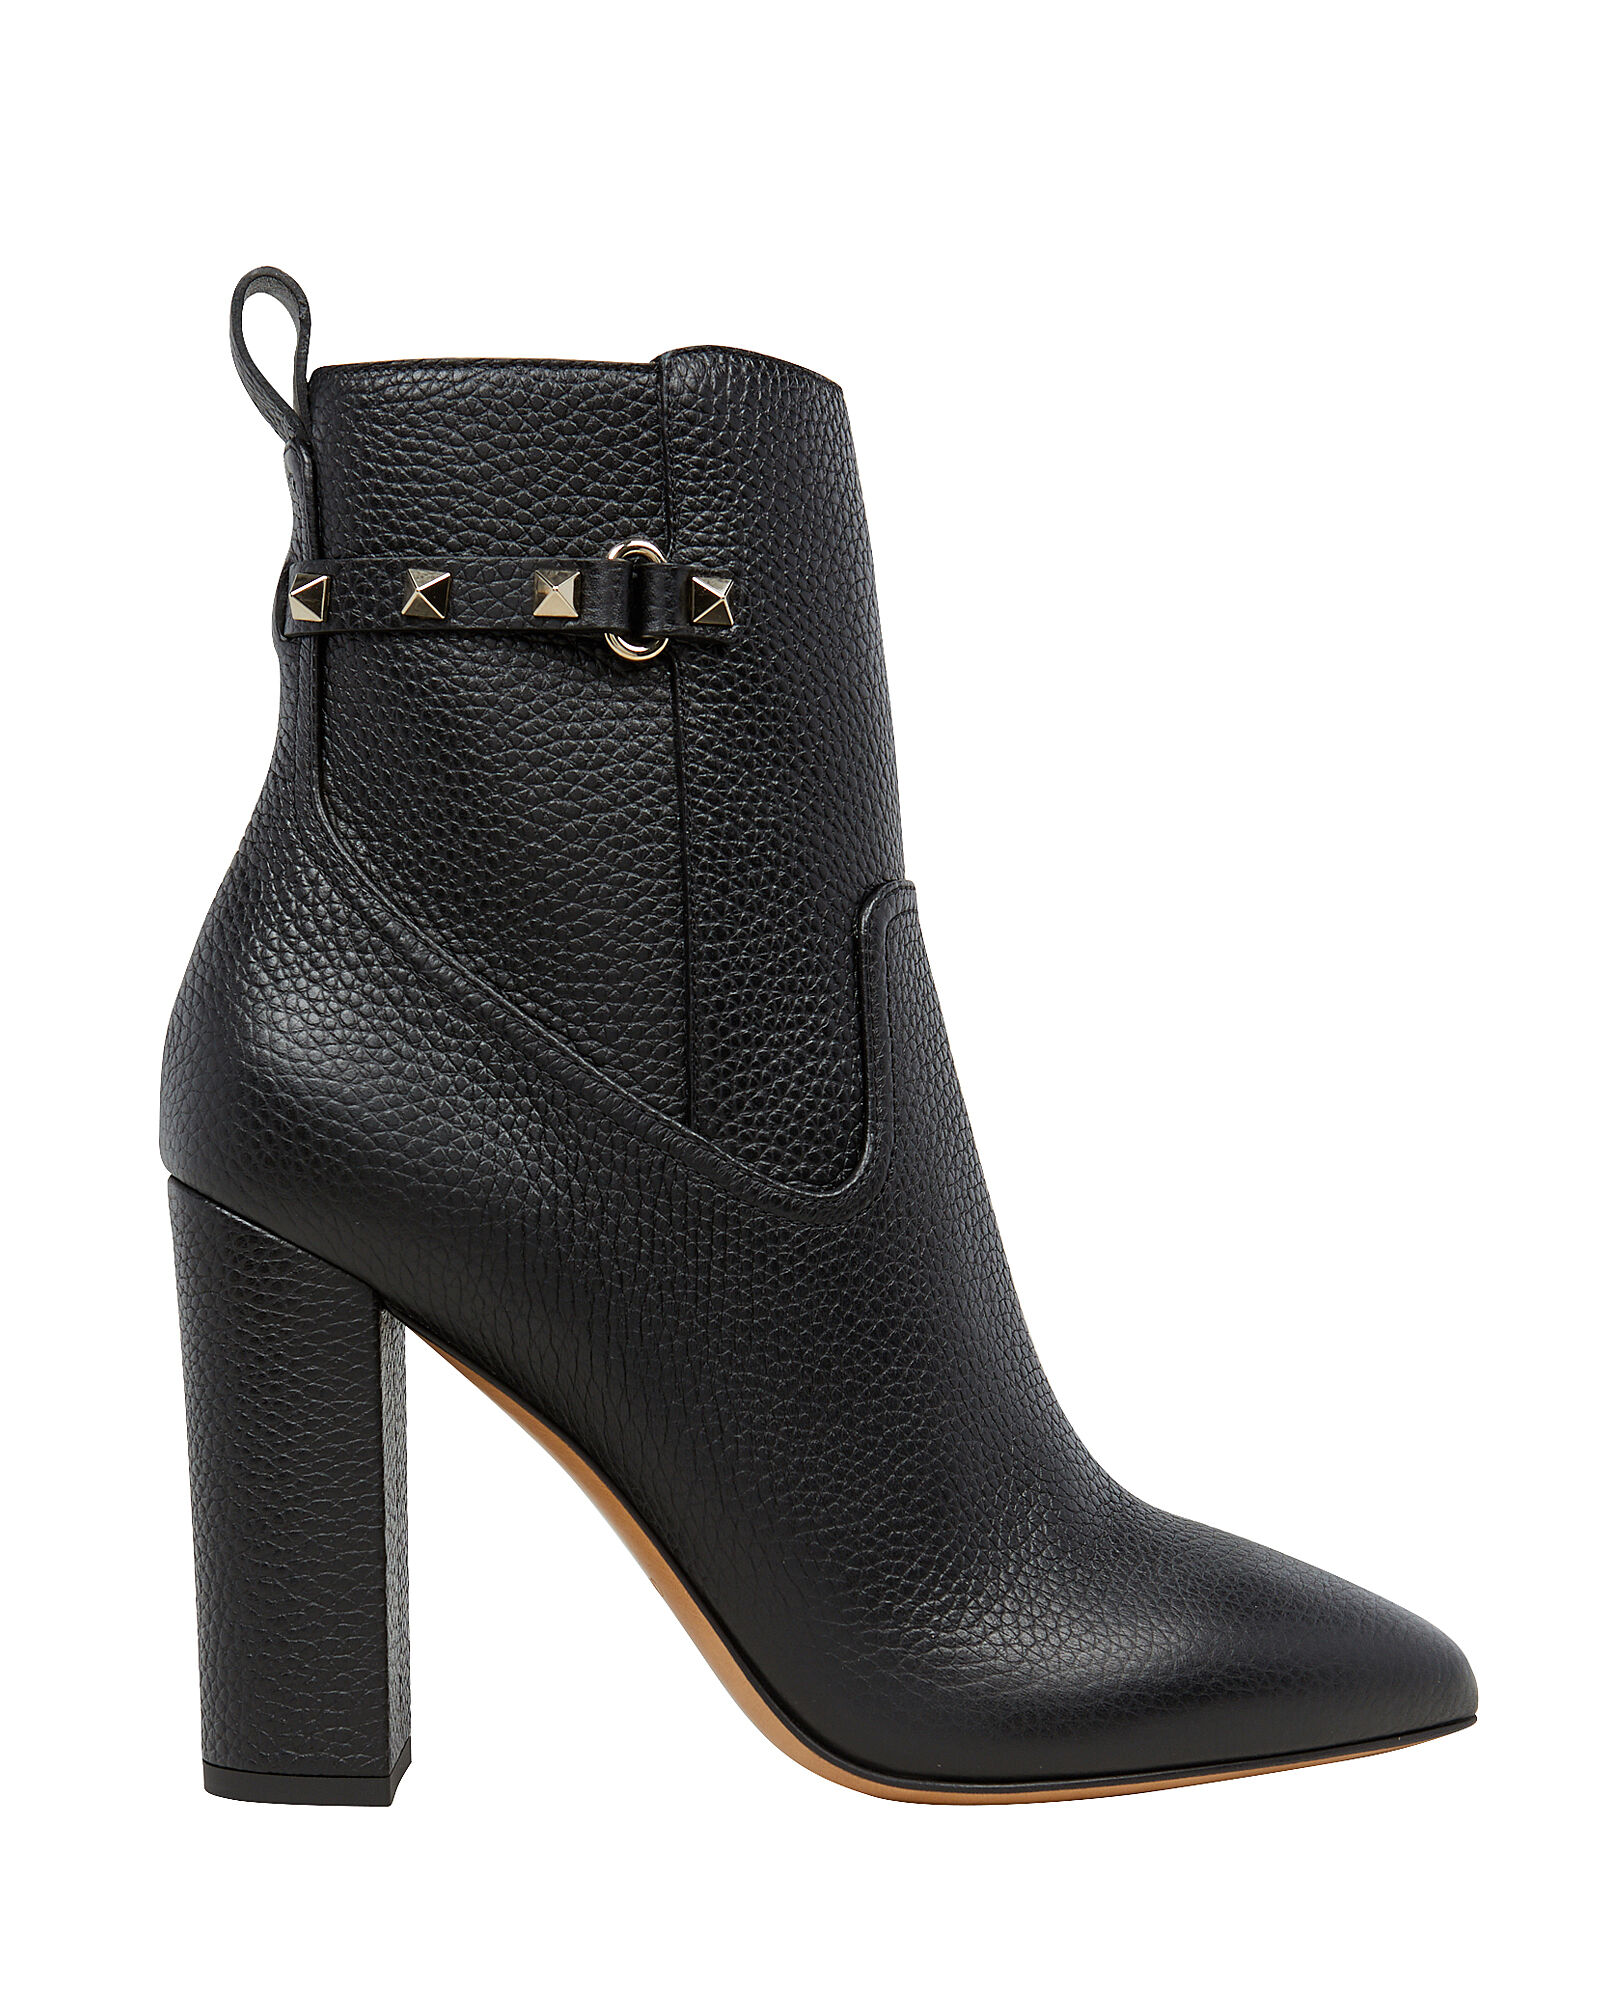 Rockstud Block Heel Booties, BLACK, hi-res